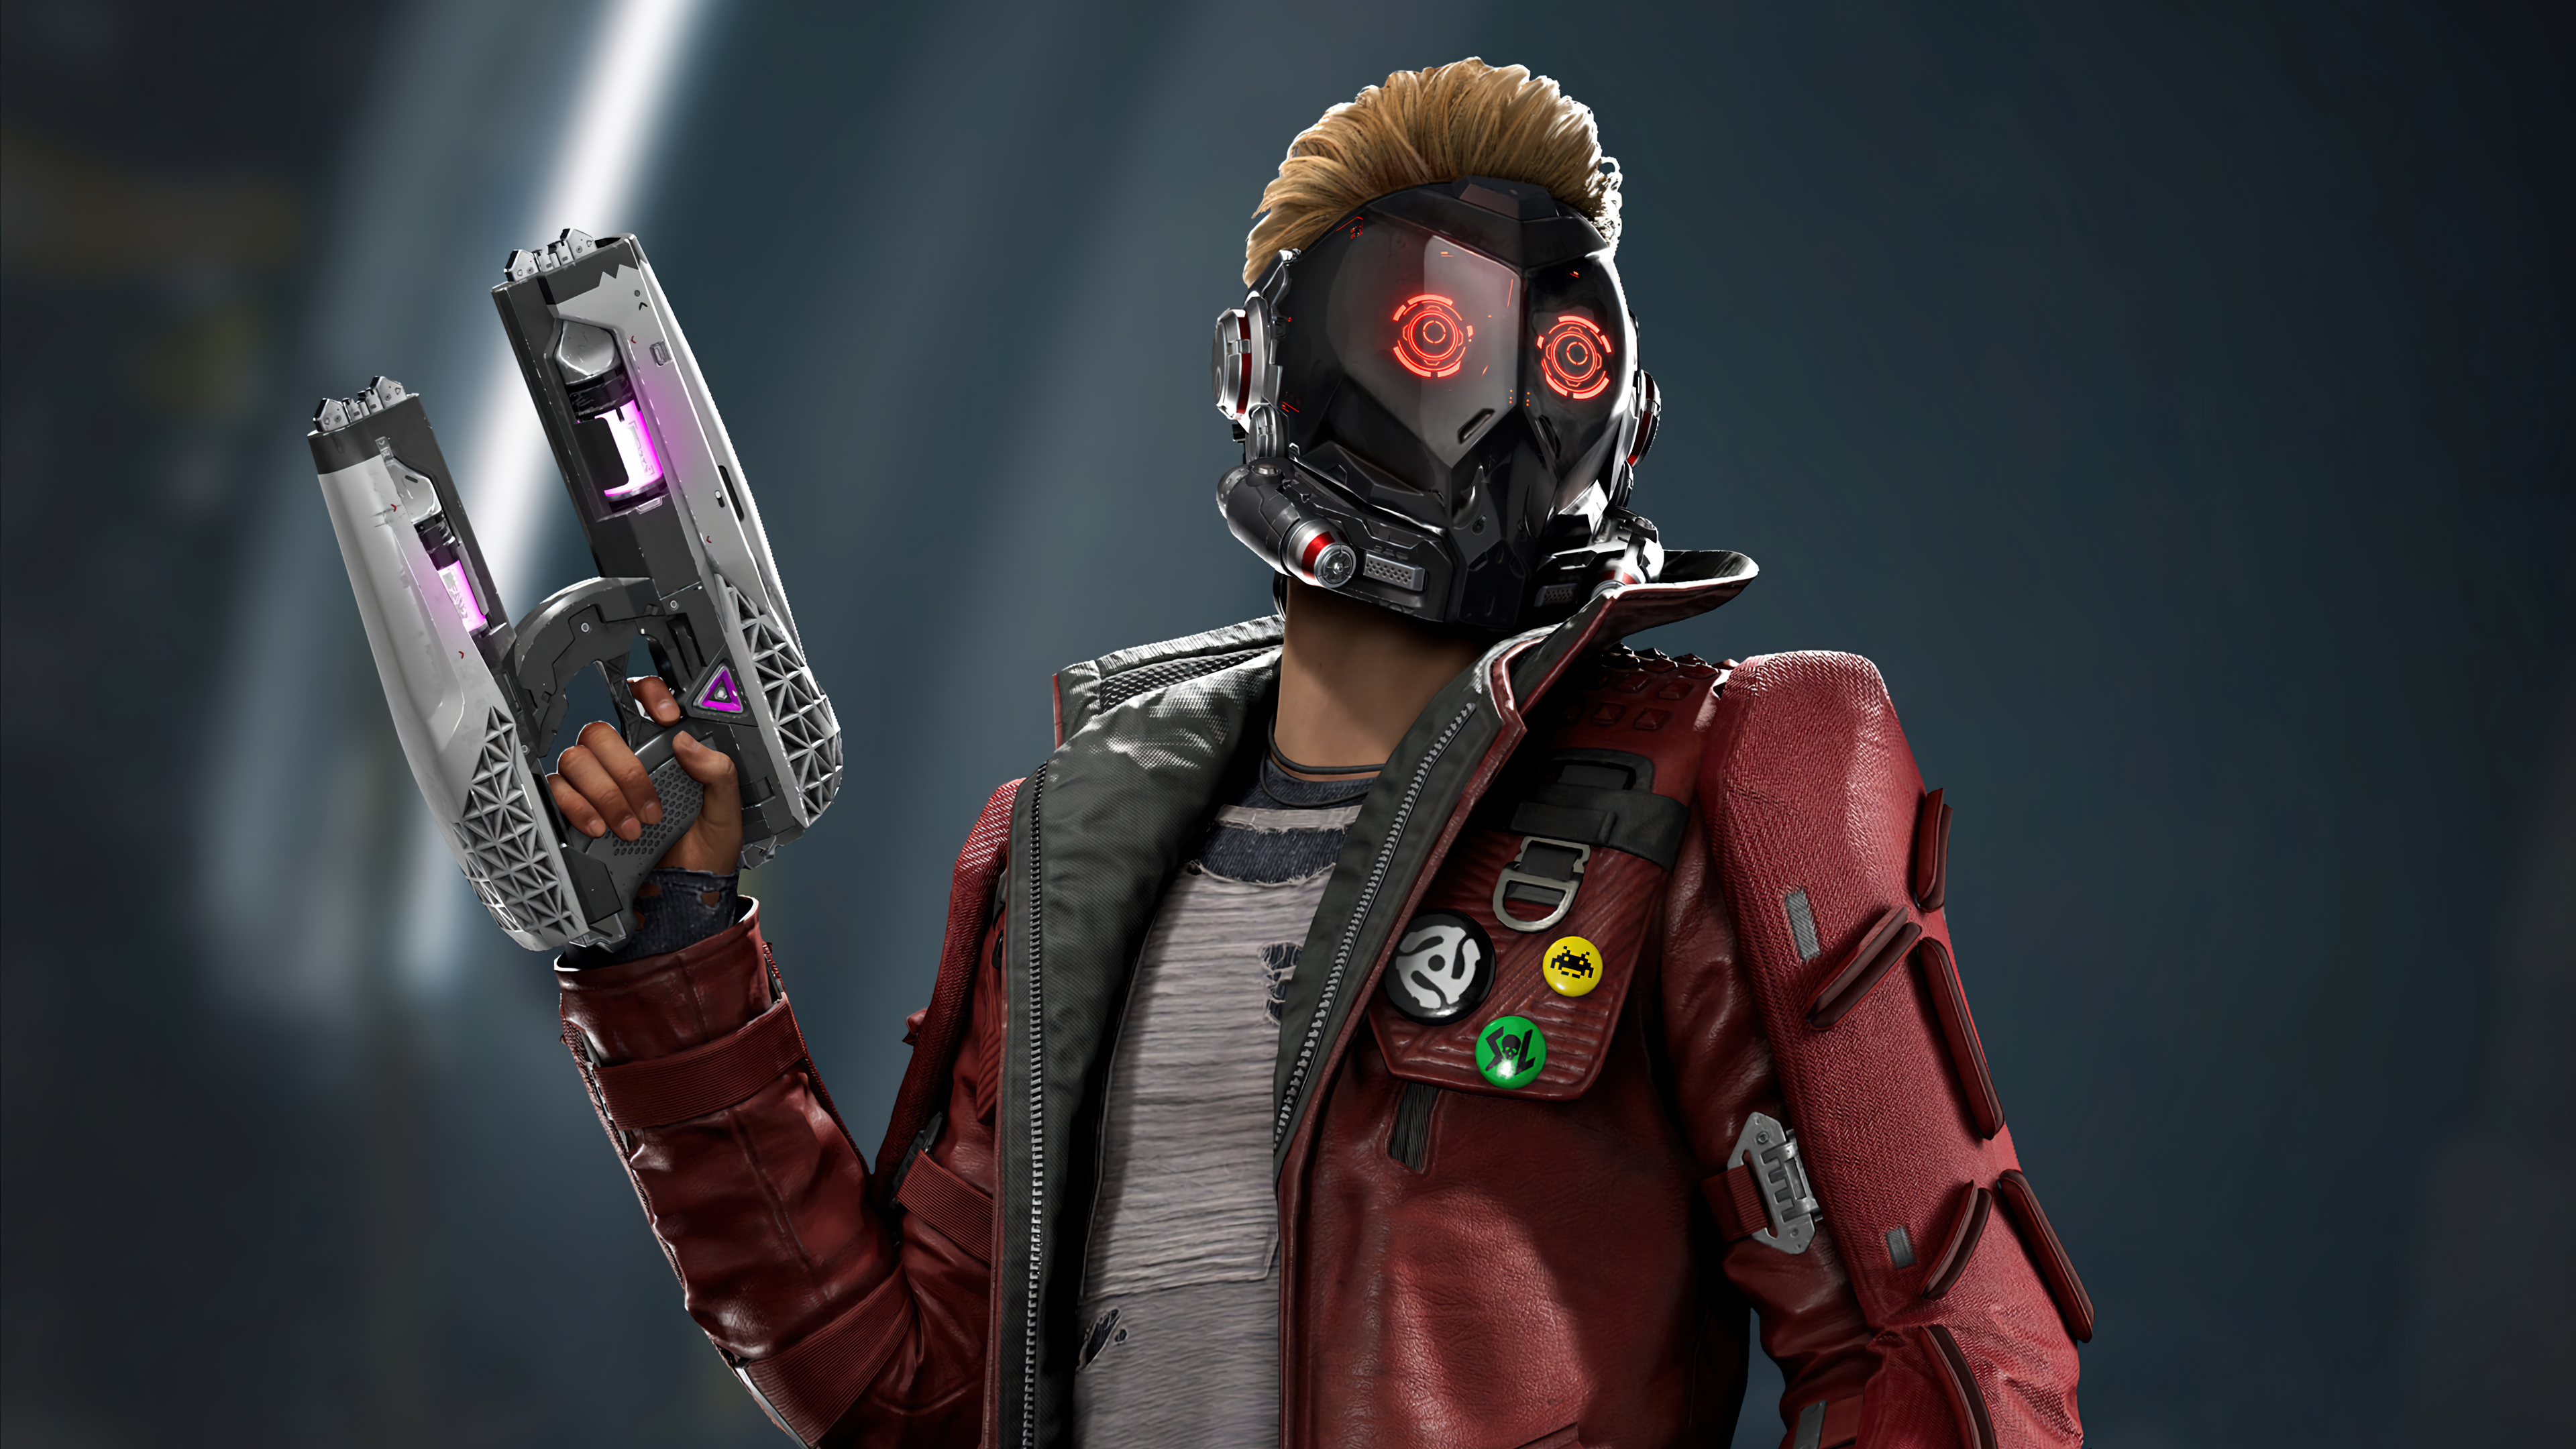 Wallpaper Star Lord Marvels Guardians of the Galaxy